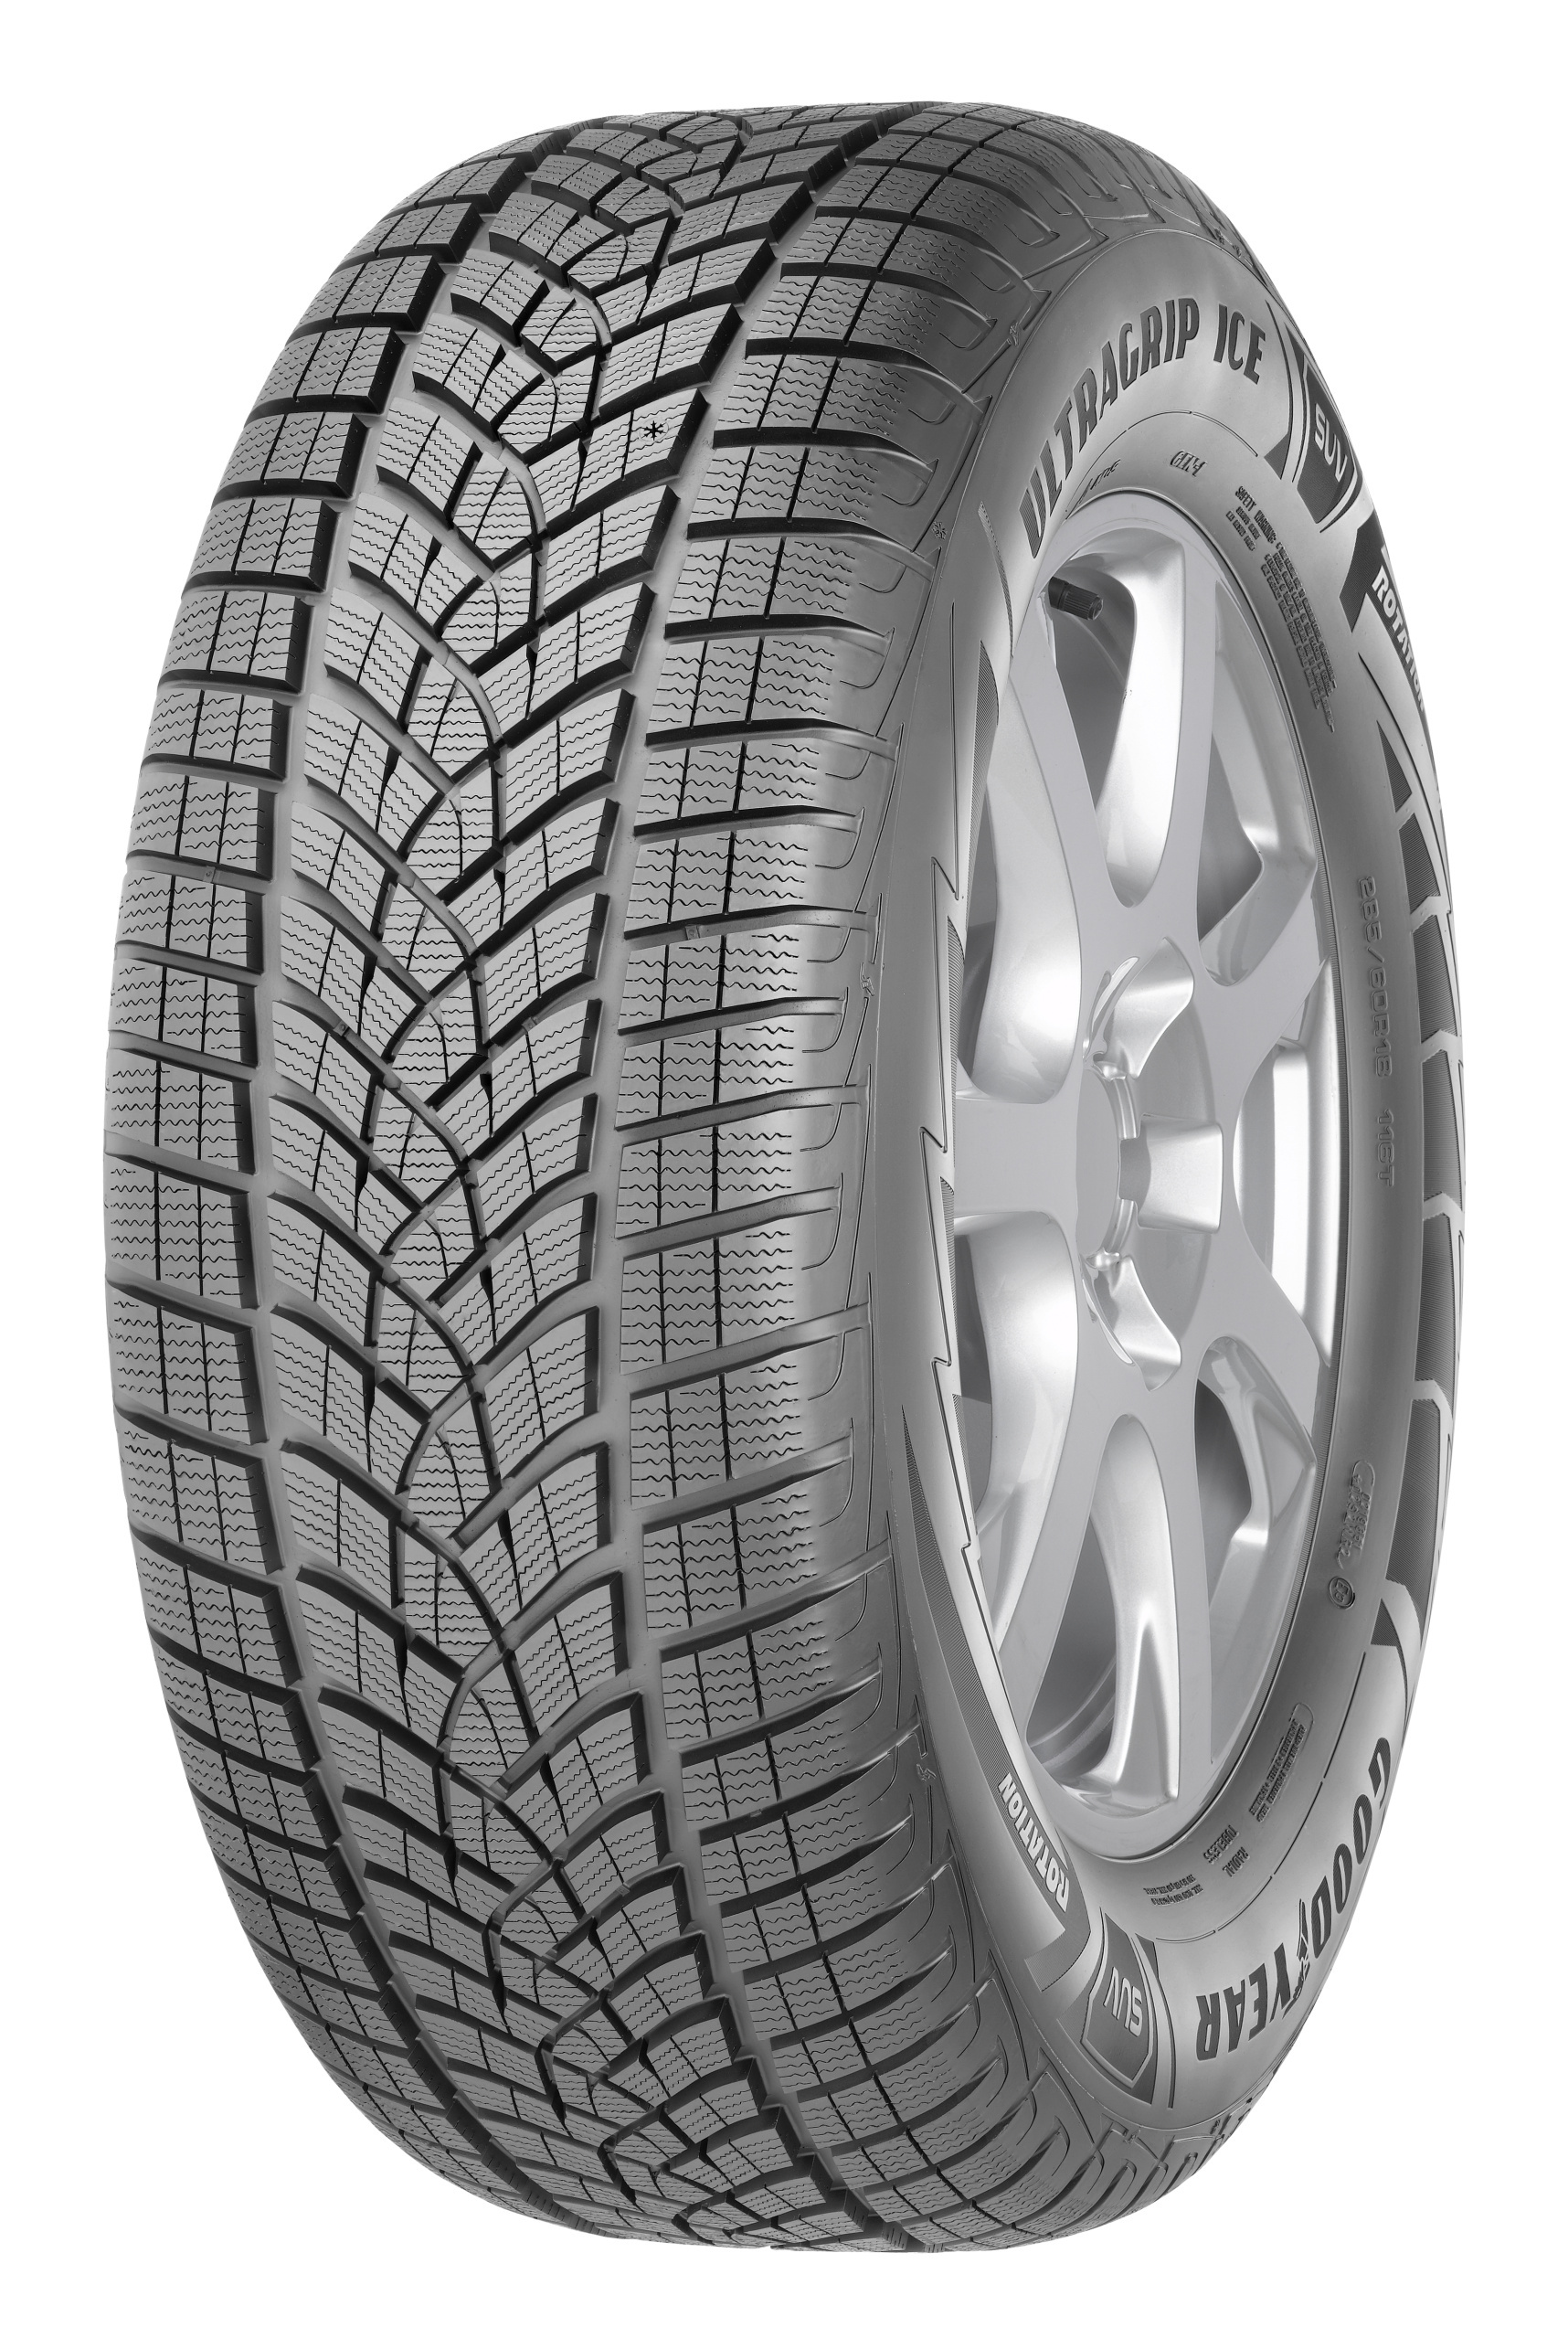 Зимняя шина GoodYear UltraGrip Ice SUV G1 255/45 R20 105T FR XL